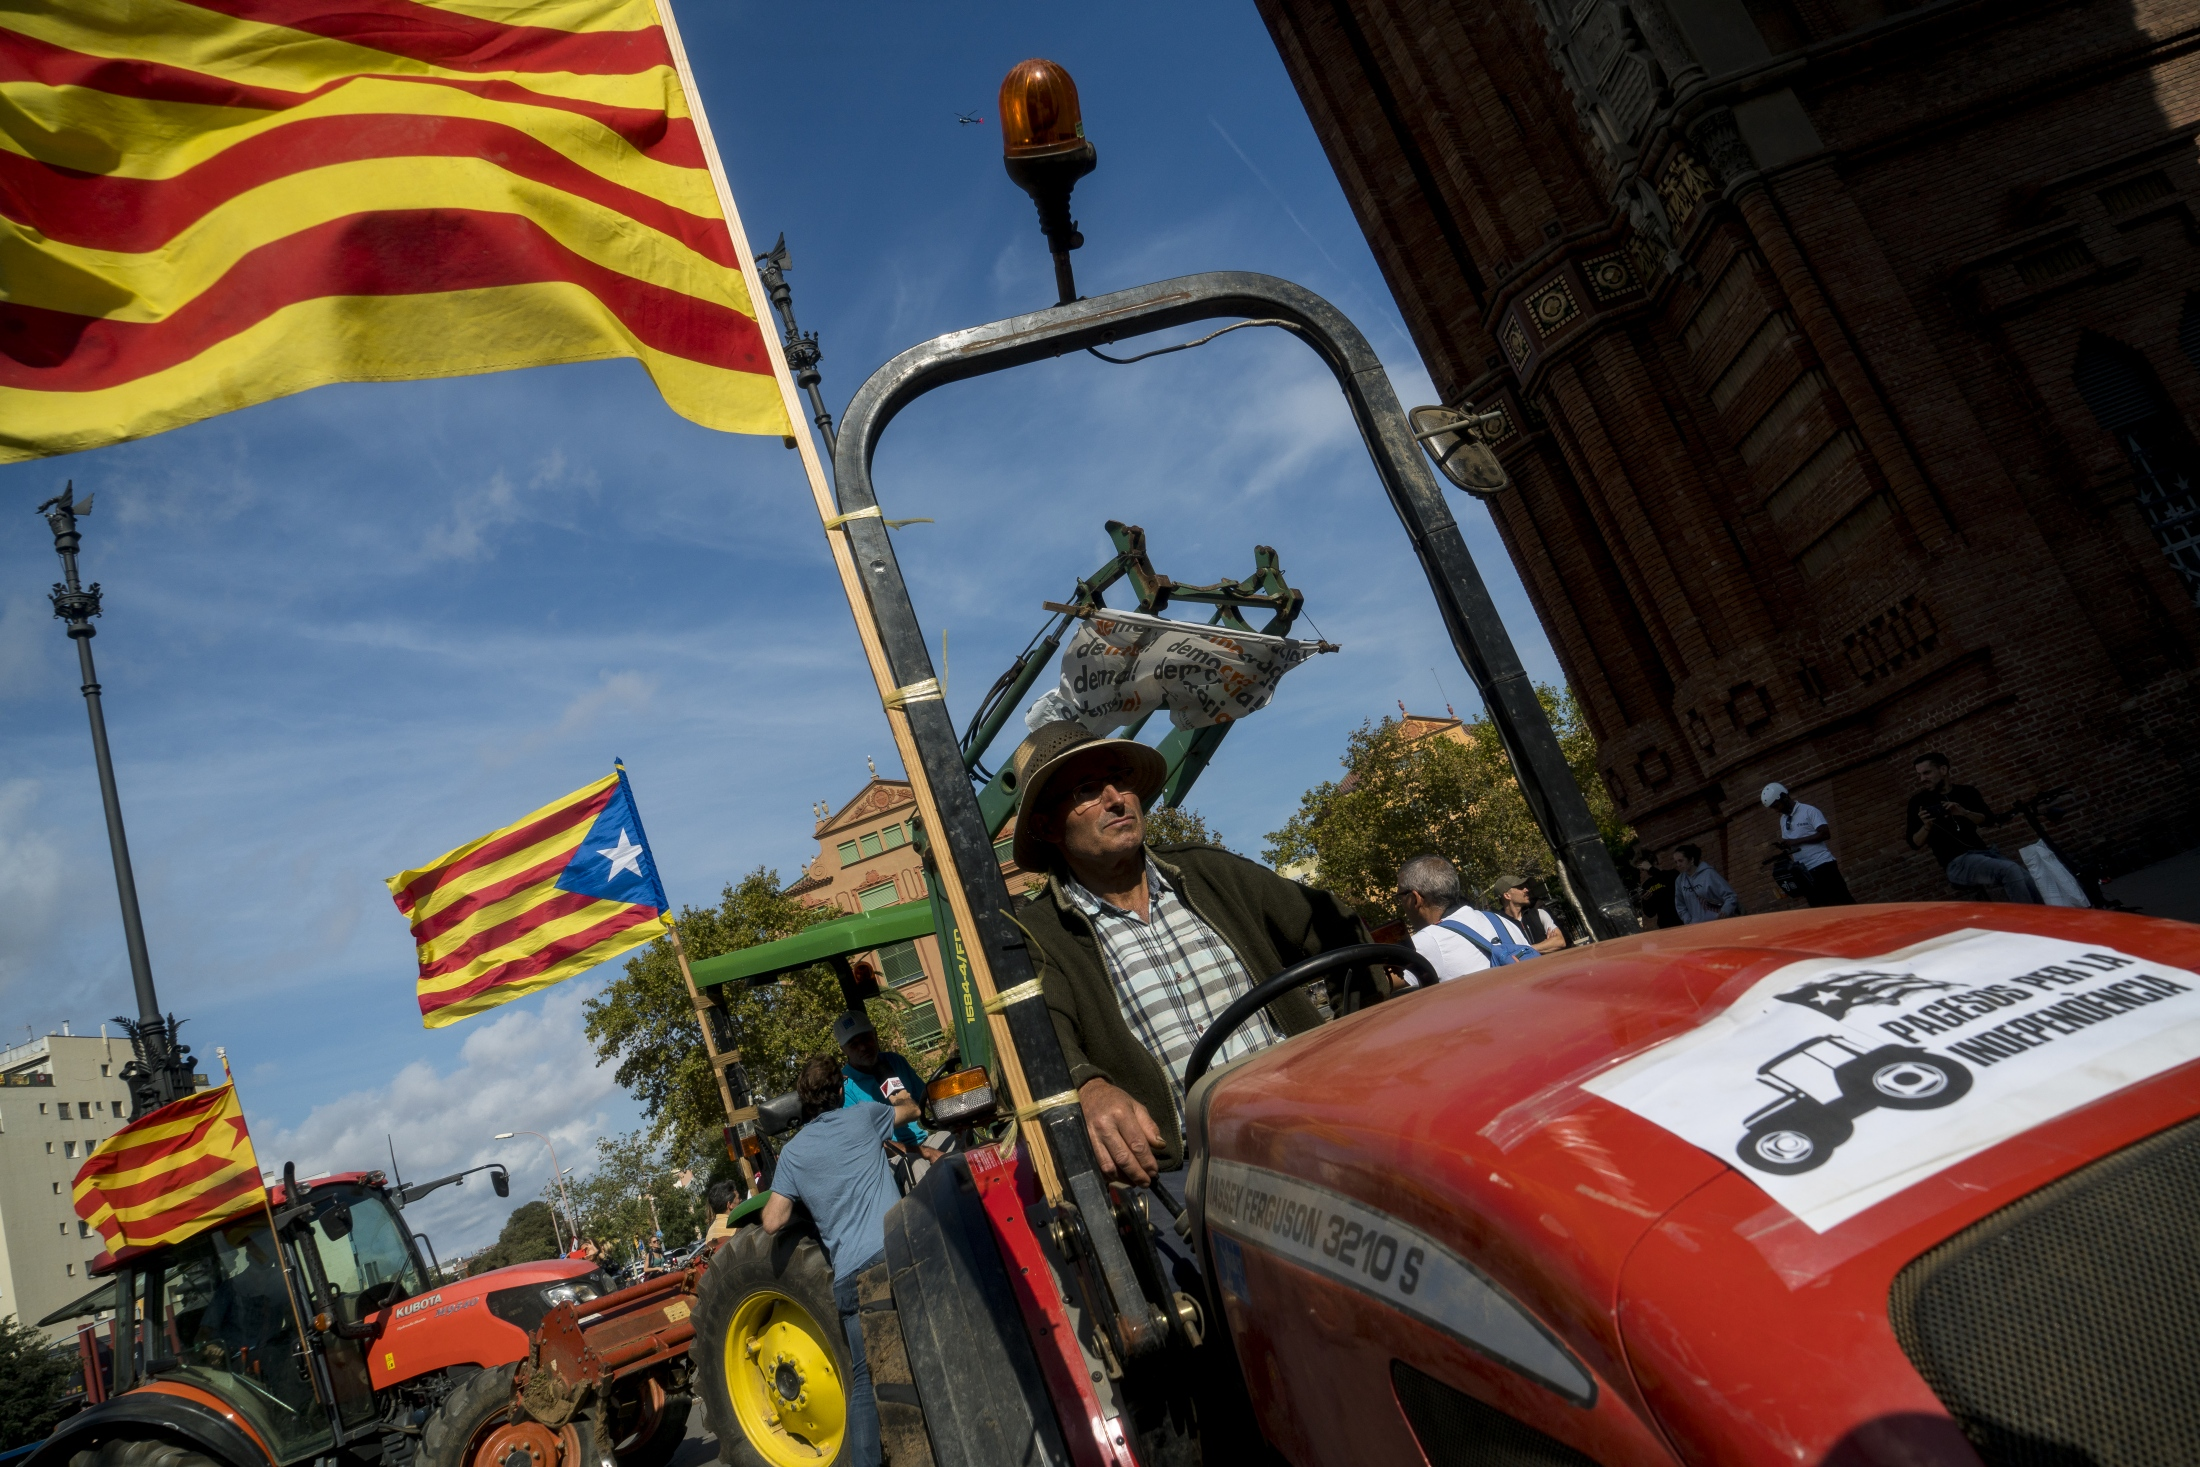 Farmers arrive at Barcelona's Arc de triomf, October 10th 2017. The farmers drove two hours from the Maresme region of Catalonia in anticipation of President Puigdemont's speech.